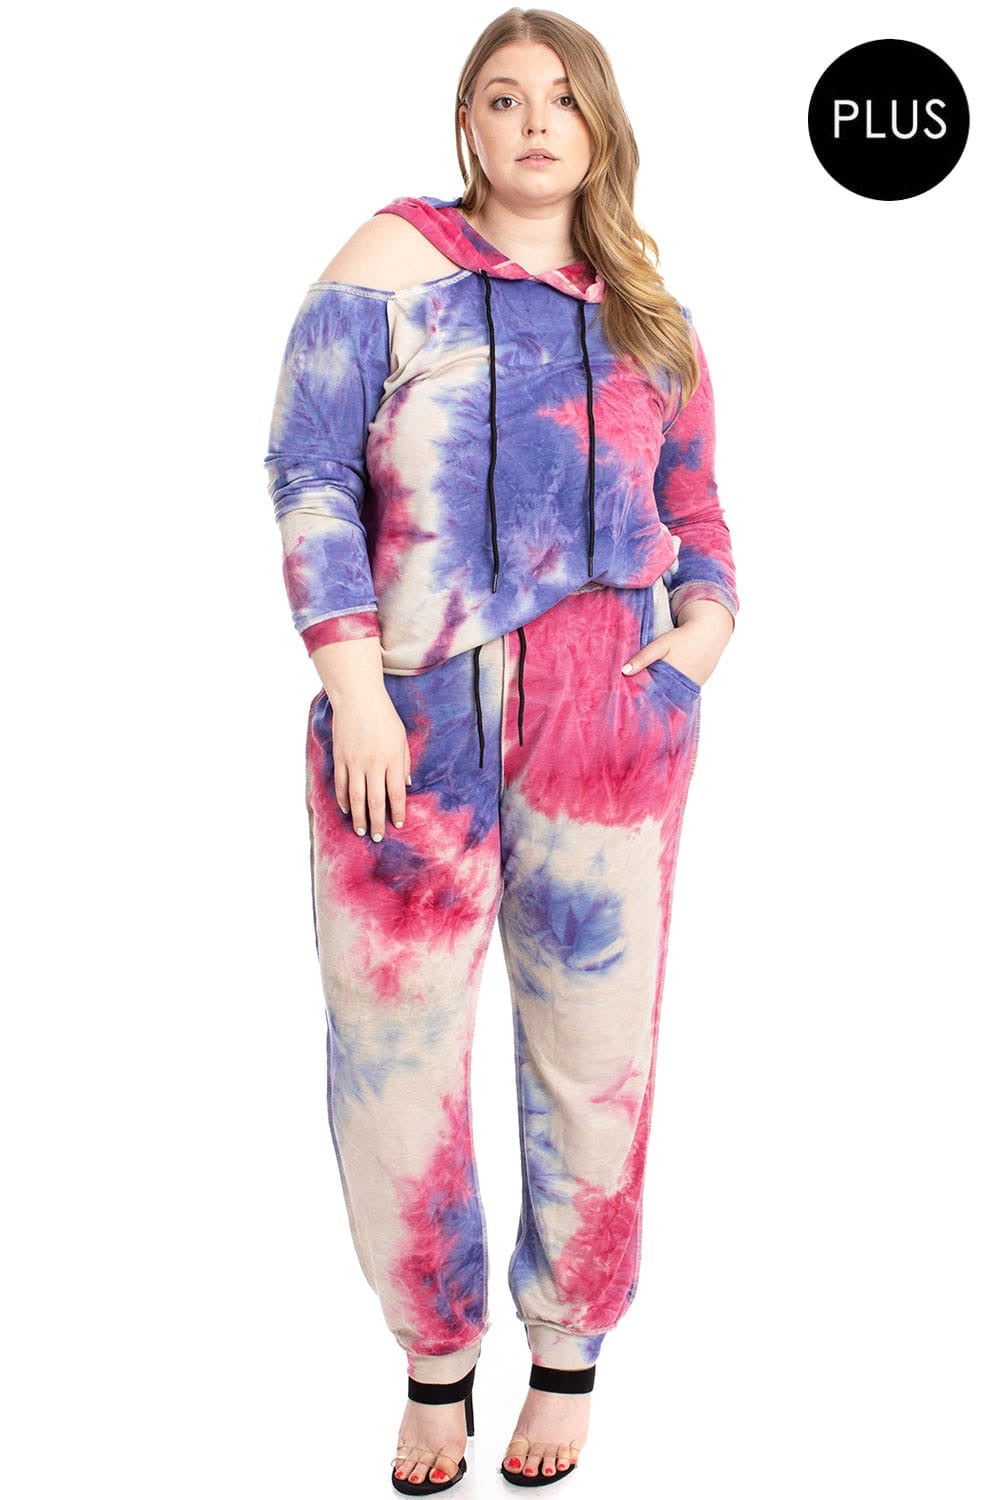 Tie Dye Shoulder Cutout Sweatpants Plus Size